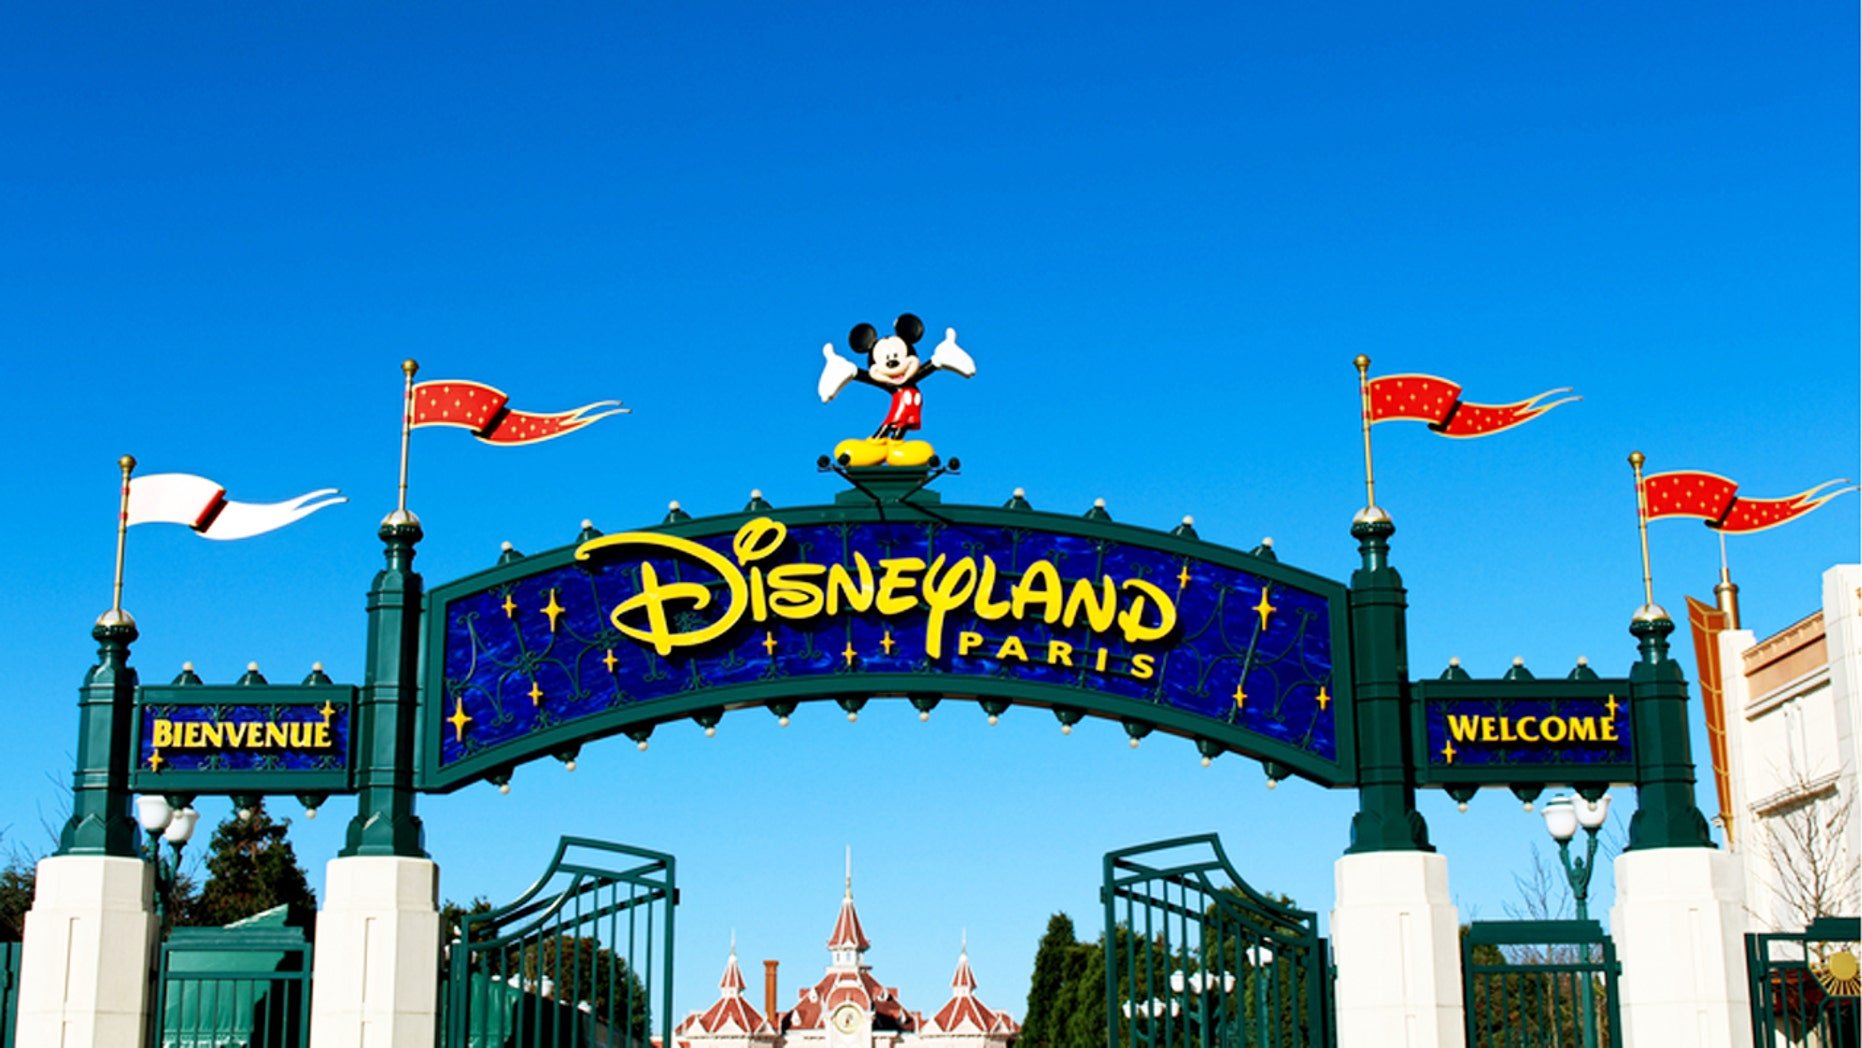 Disneyland Paris was unaffected following the discovery Wednesday of a suspicious package at a nearby train station, the company said.